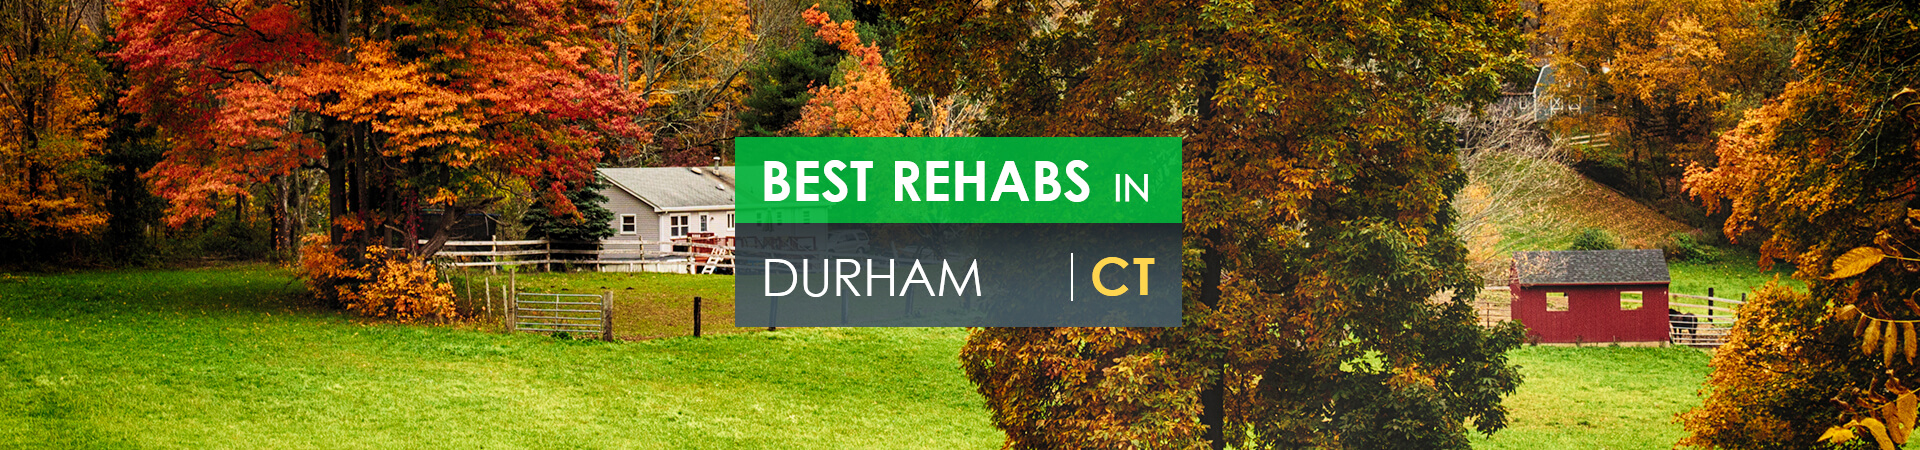 Best rehabs in Durham, CT